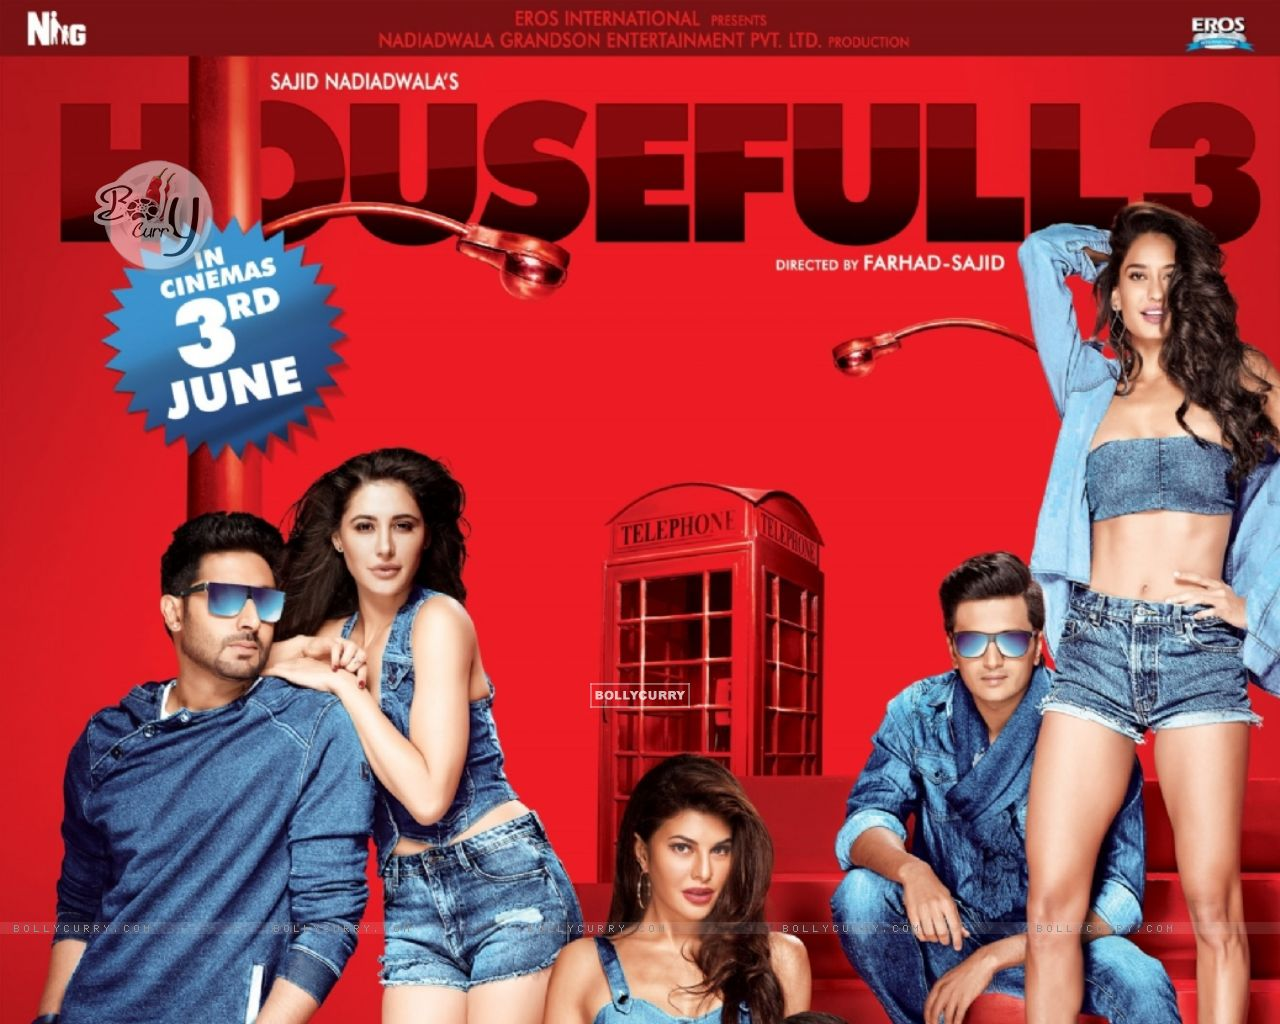 Poster of the film 'Housefull 3' (403919) size:1280x1024